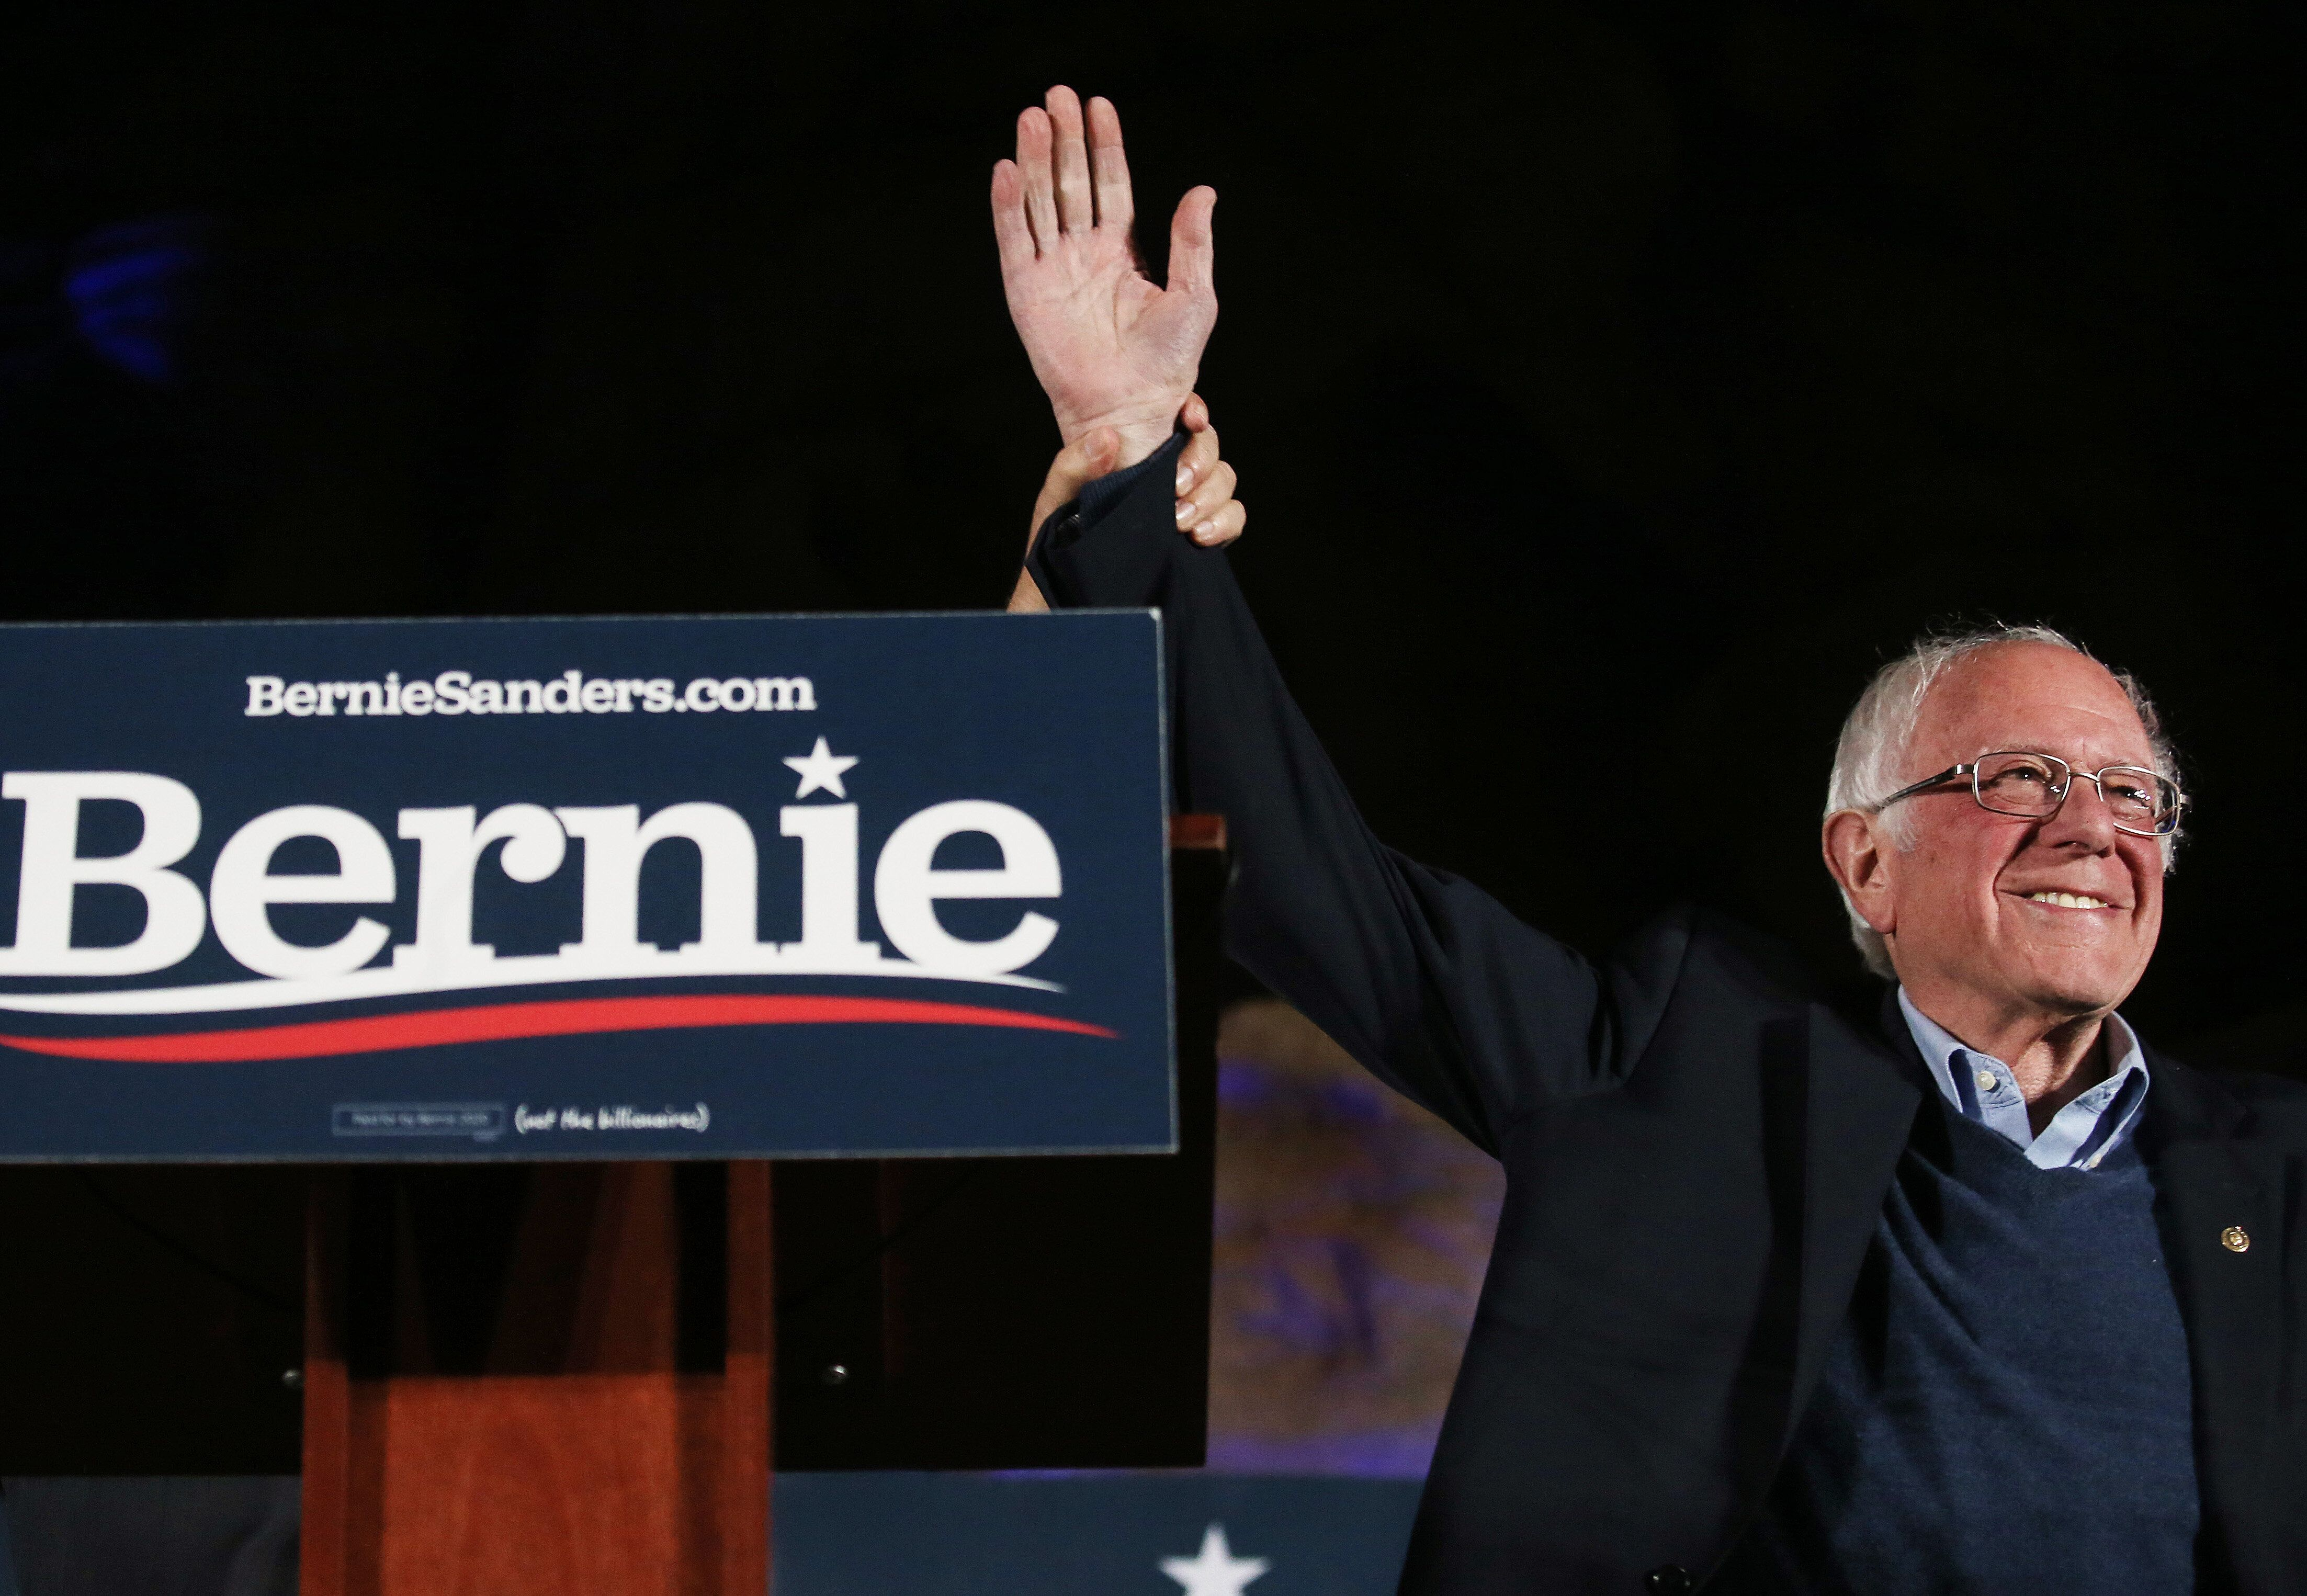 Sen. Bernie Sanders (I-Vt.) waves to supporters at a campaign rally on Feb. 21, 2020, in Las Vegas.